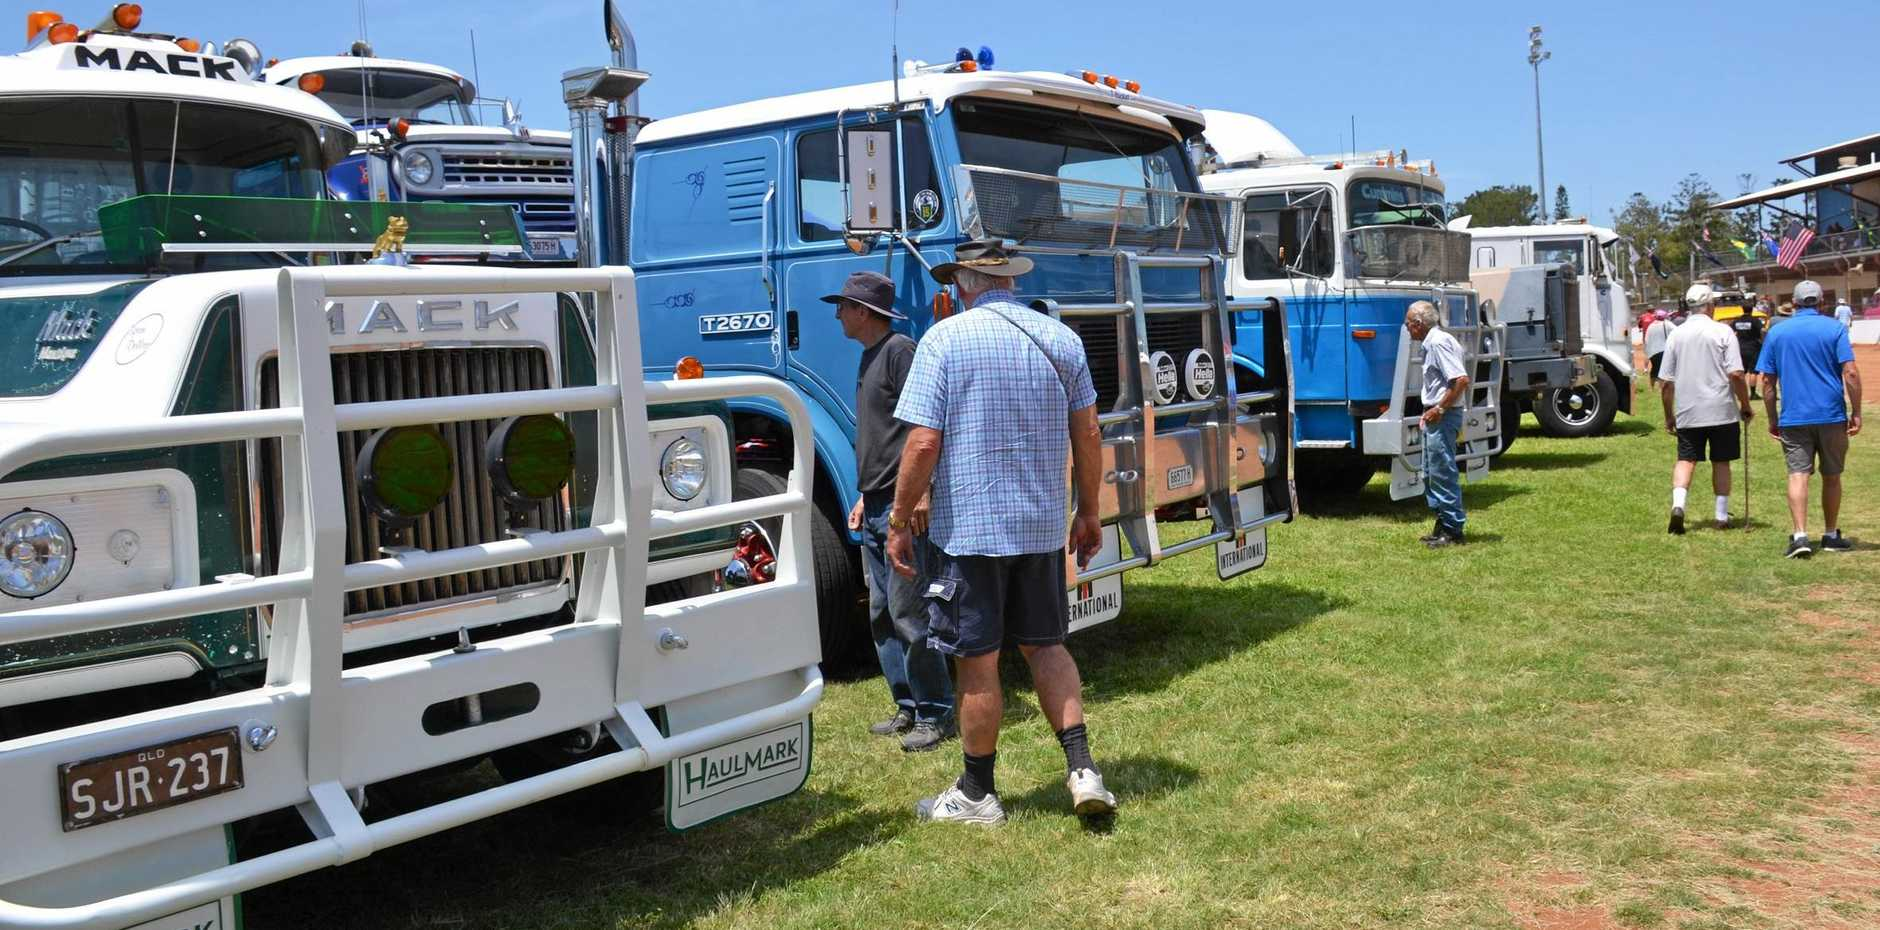 TRUCKING EVENTS: Trucks from all eras are always well worth getting along to see.